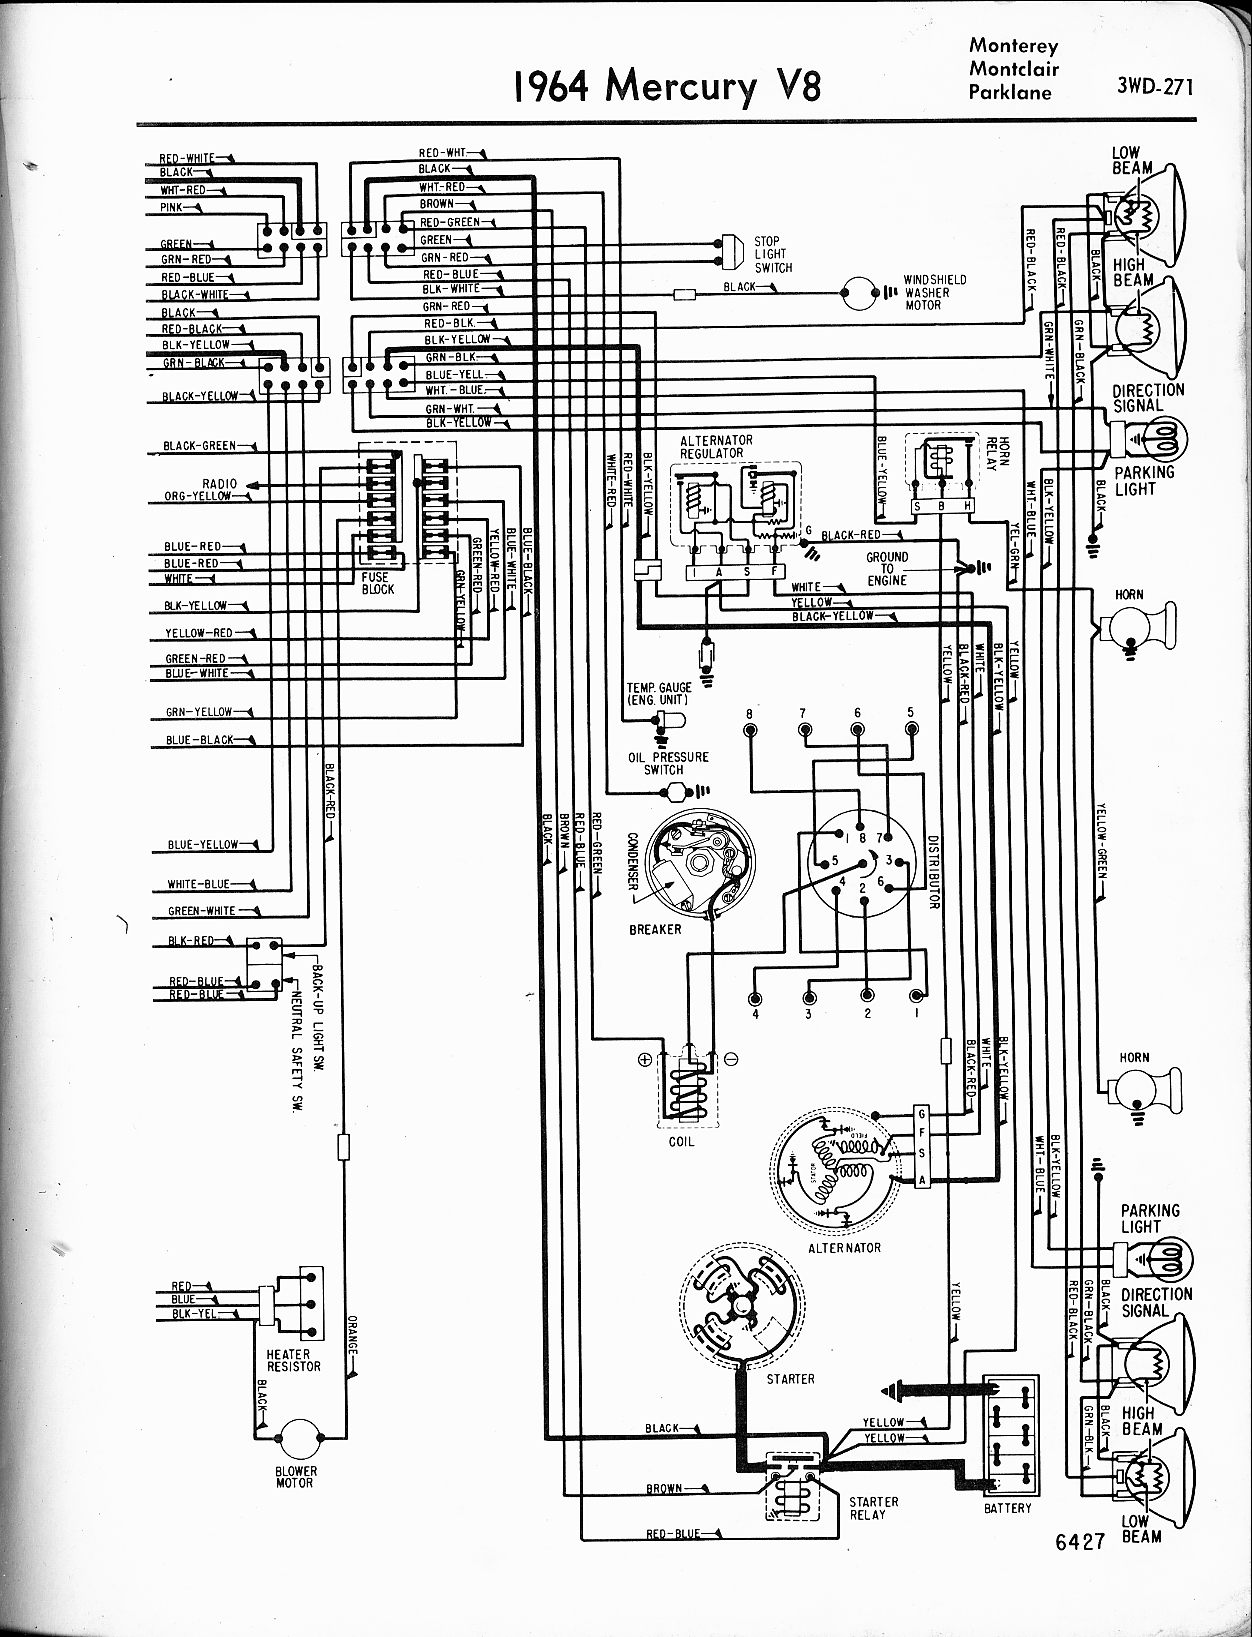 1966 mercury comet wiring diagram wiring diagram u2022 rh msblog co 1965 impala engine wiring diagram engine wiring diagram 1967 mustang v8